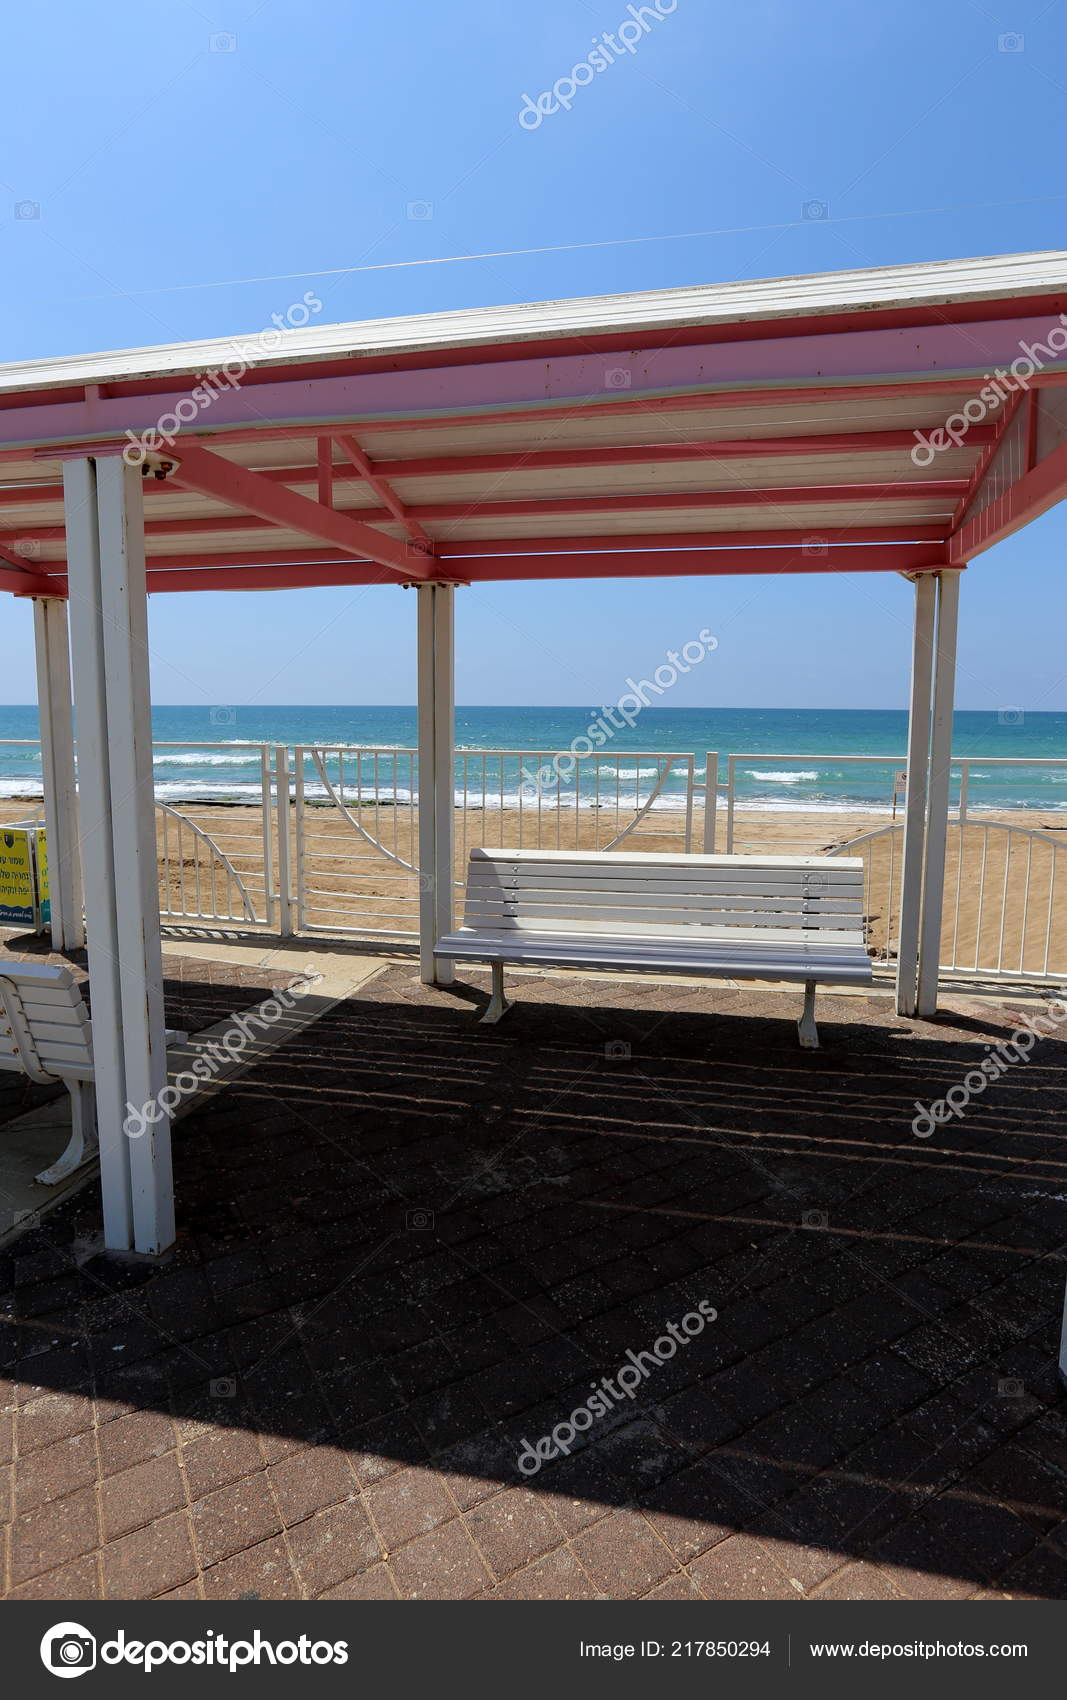 Canopy protection from the sunu0027s rays on the Mediterranean coastu2013 stock image & Canopy Protection Sun Rays Mediterranean Coast u2014 Stock Photo ...